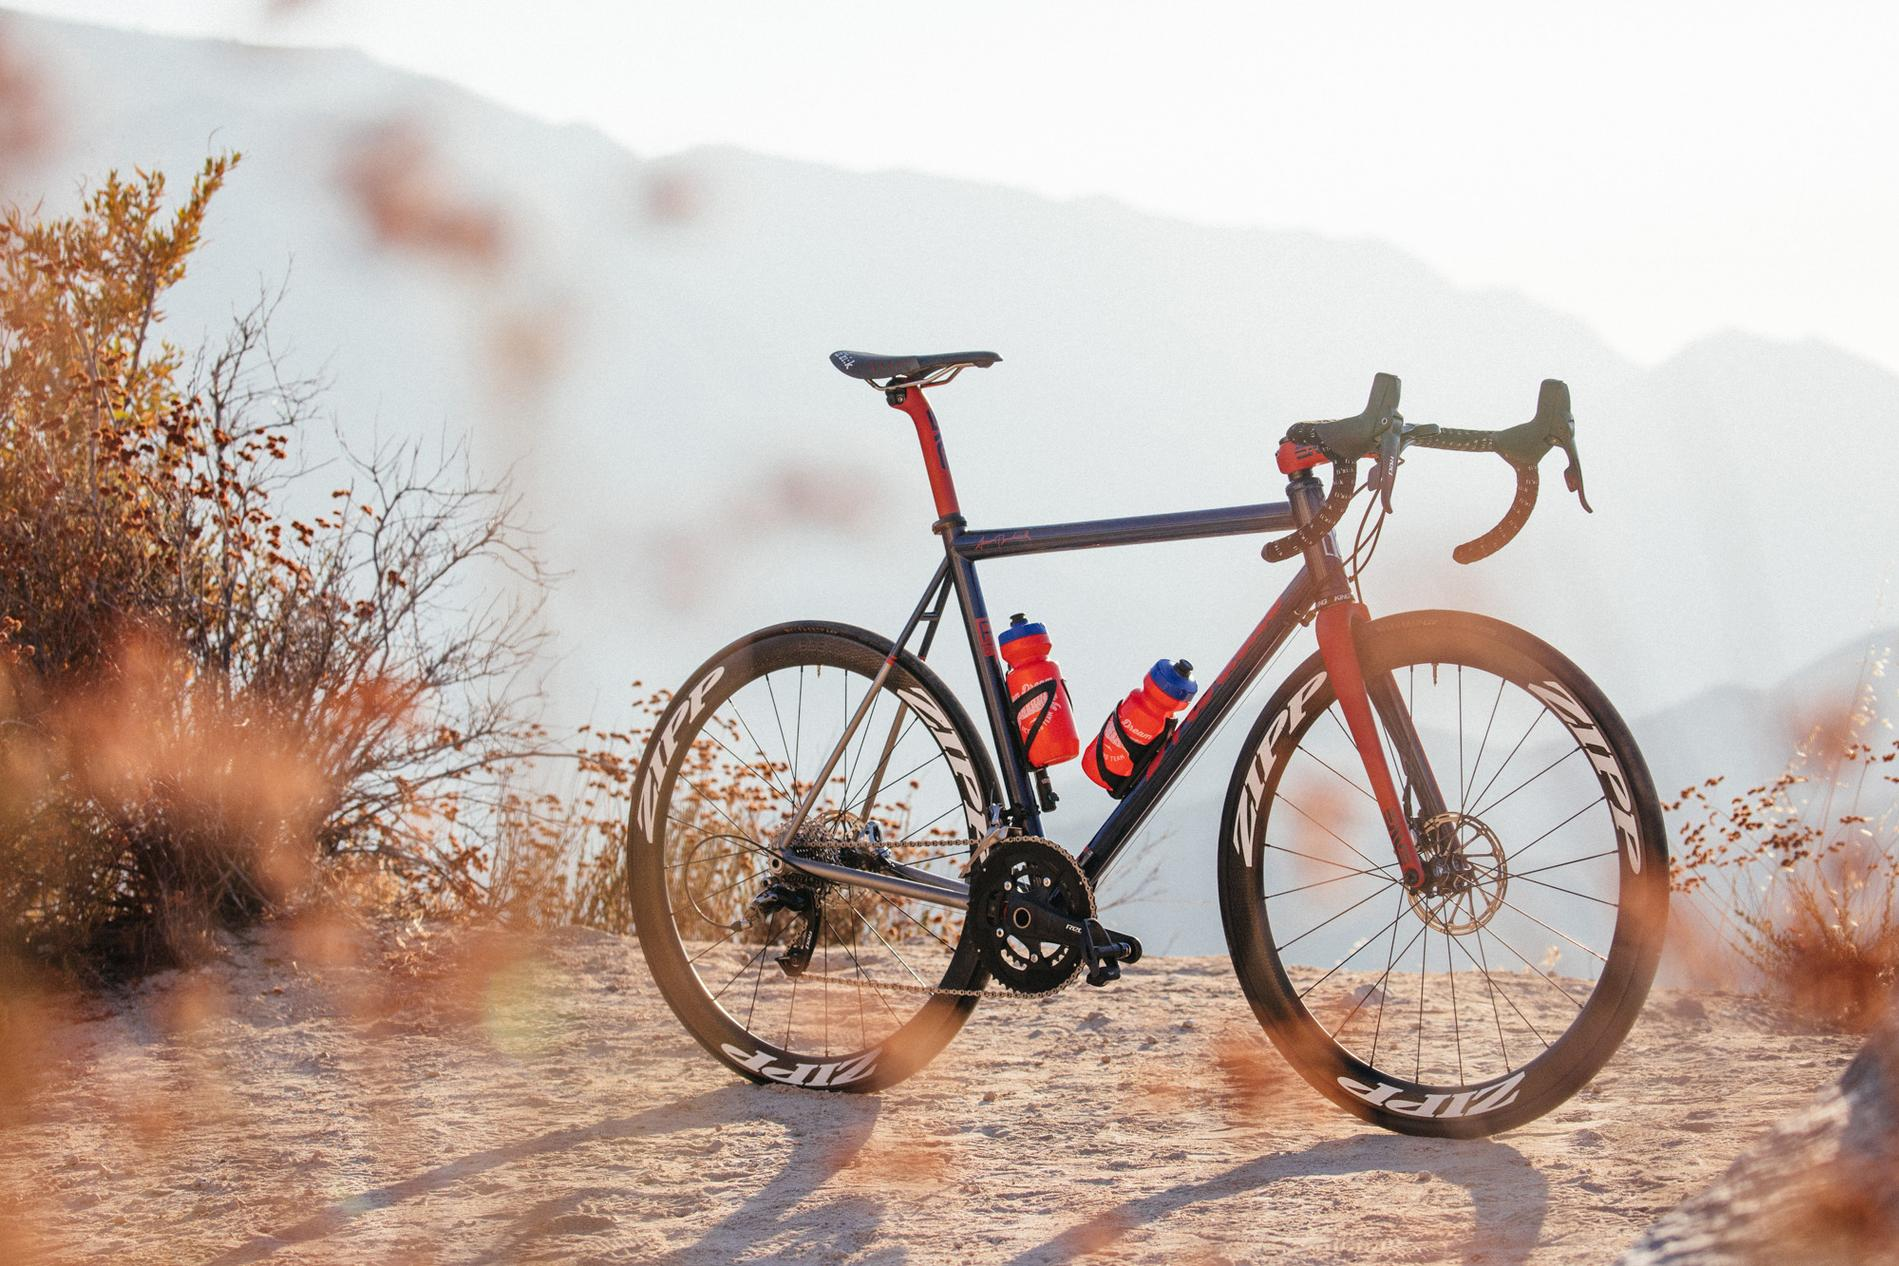 Mosaic in Los Angeles: Aaron Barcheck's Mosaic RT1 Disc Road